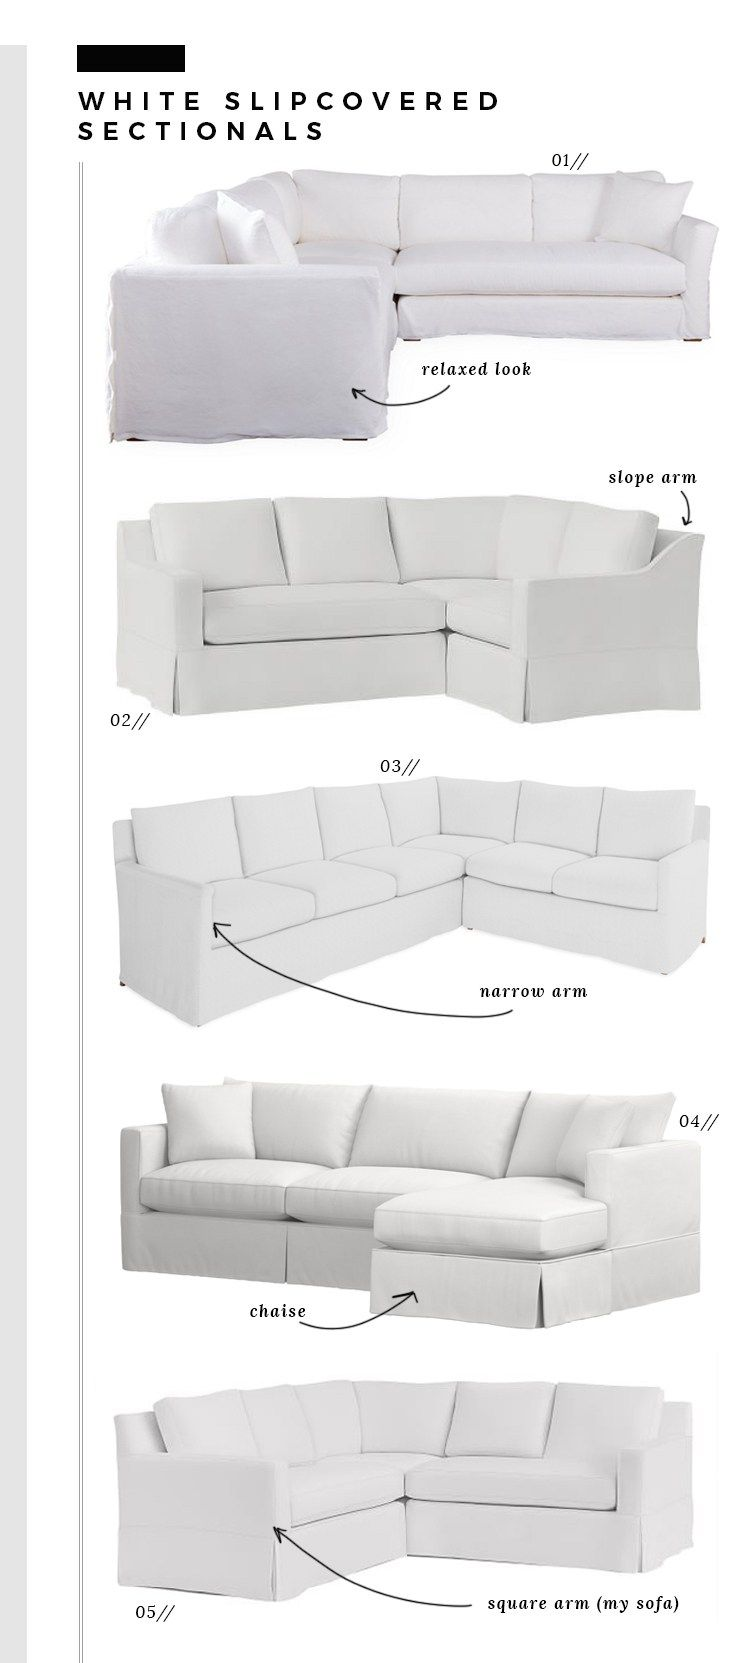 How We Choose White Slipcovered Sofas Room For Tuesday Blog White Slipcover Sofa Sectional Sofa With Chaise Slipcovered Sofa